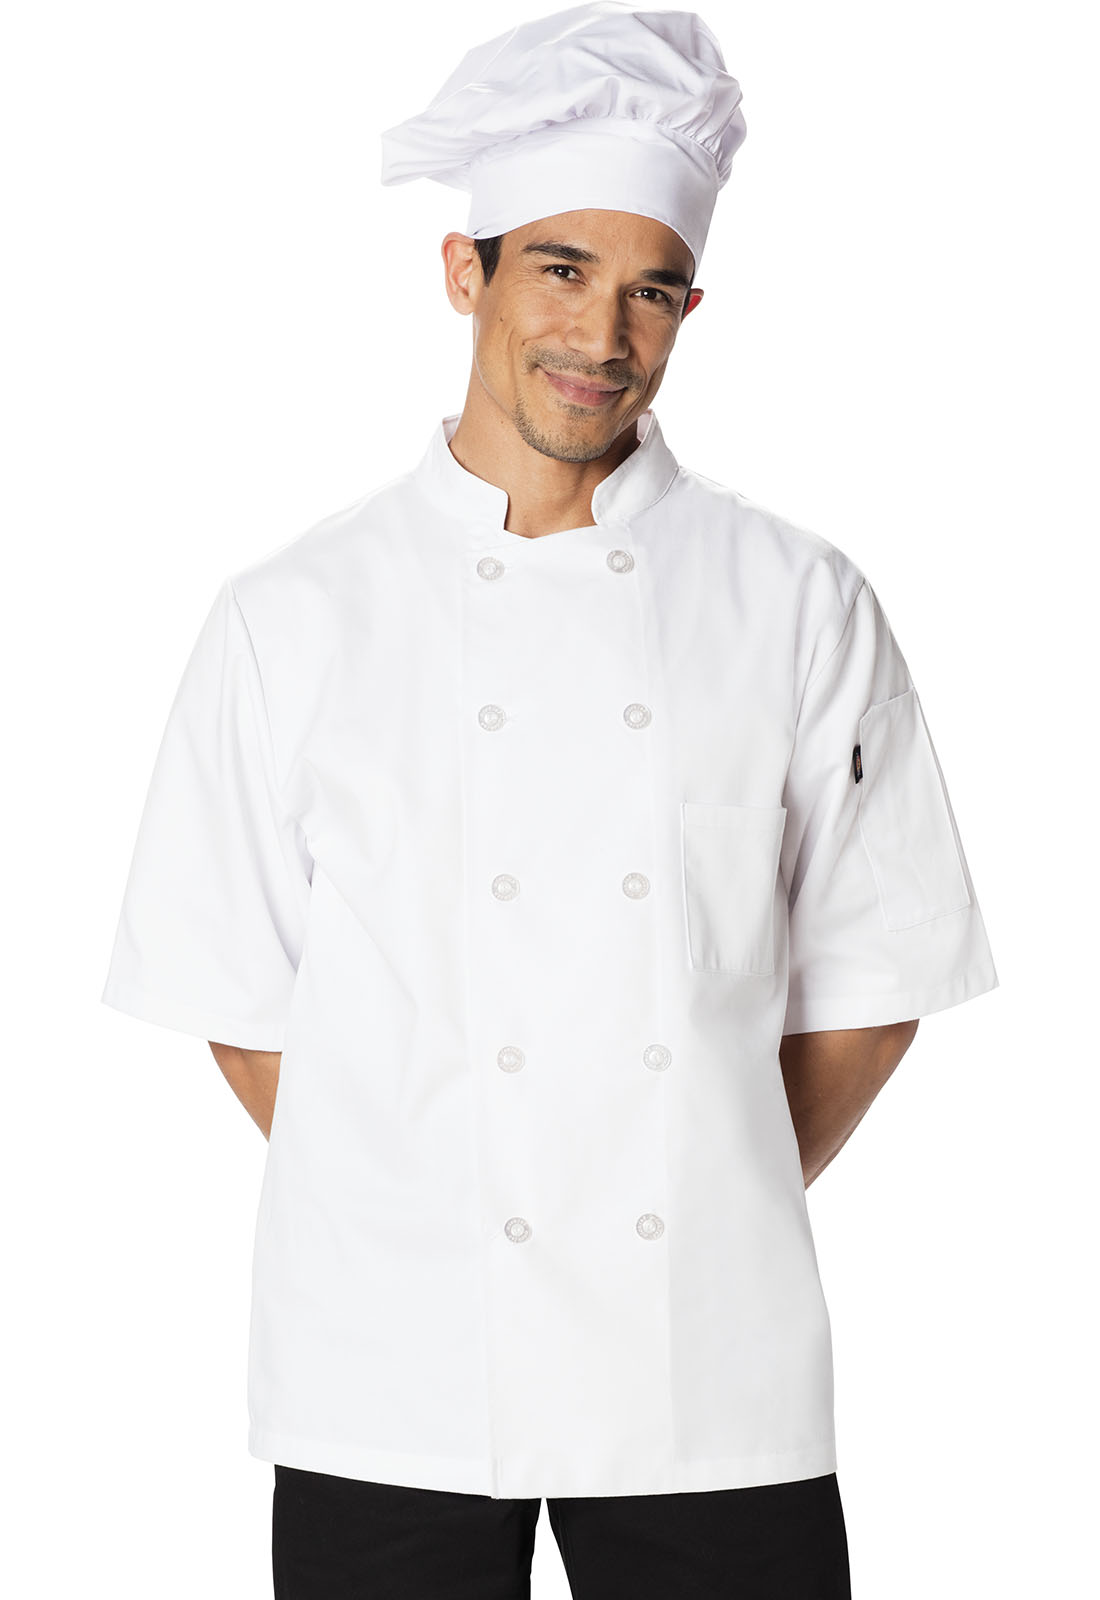 Classic 10 Button Chef Coat S/S-Dickies Chef